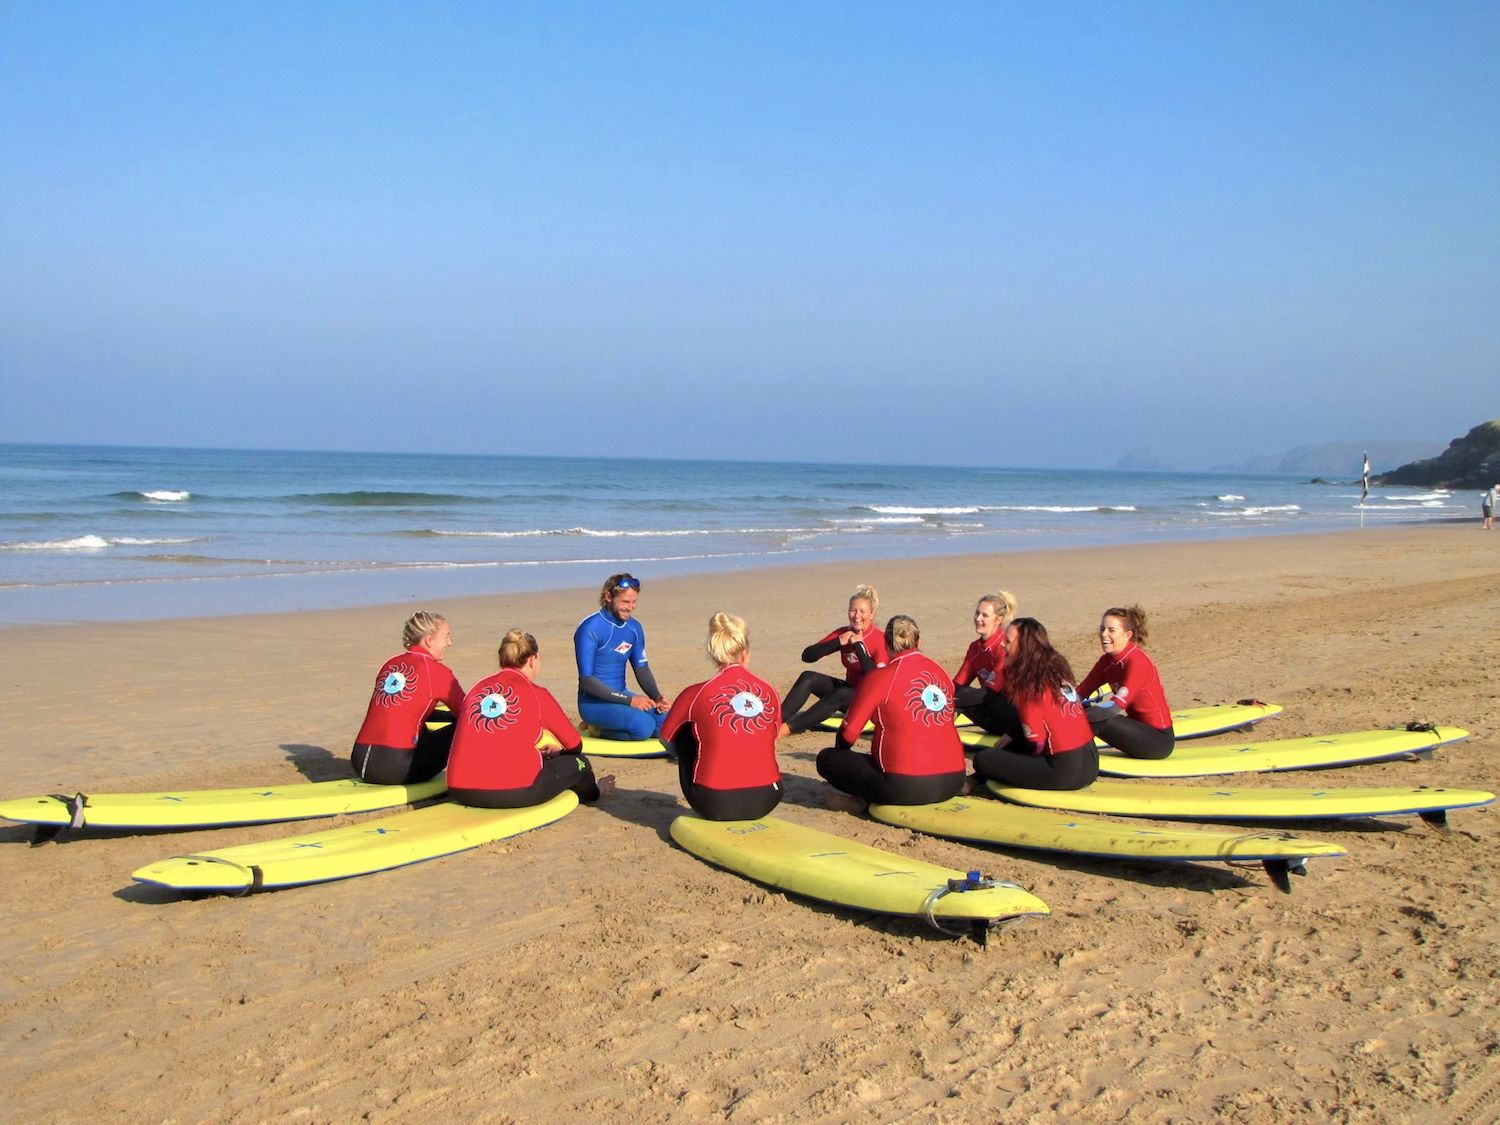 ride-on-retreats-beach-surf-lesson.jpg